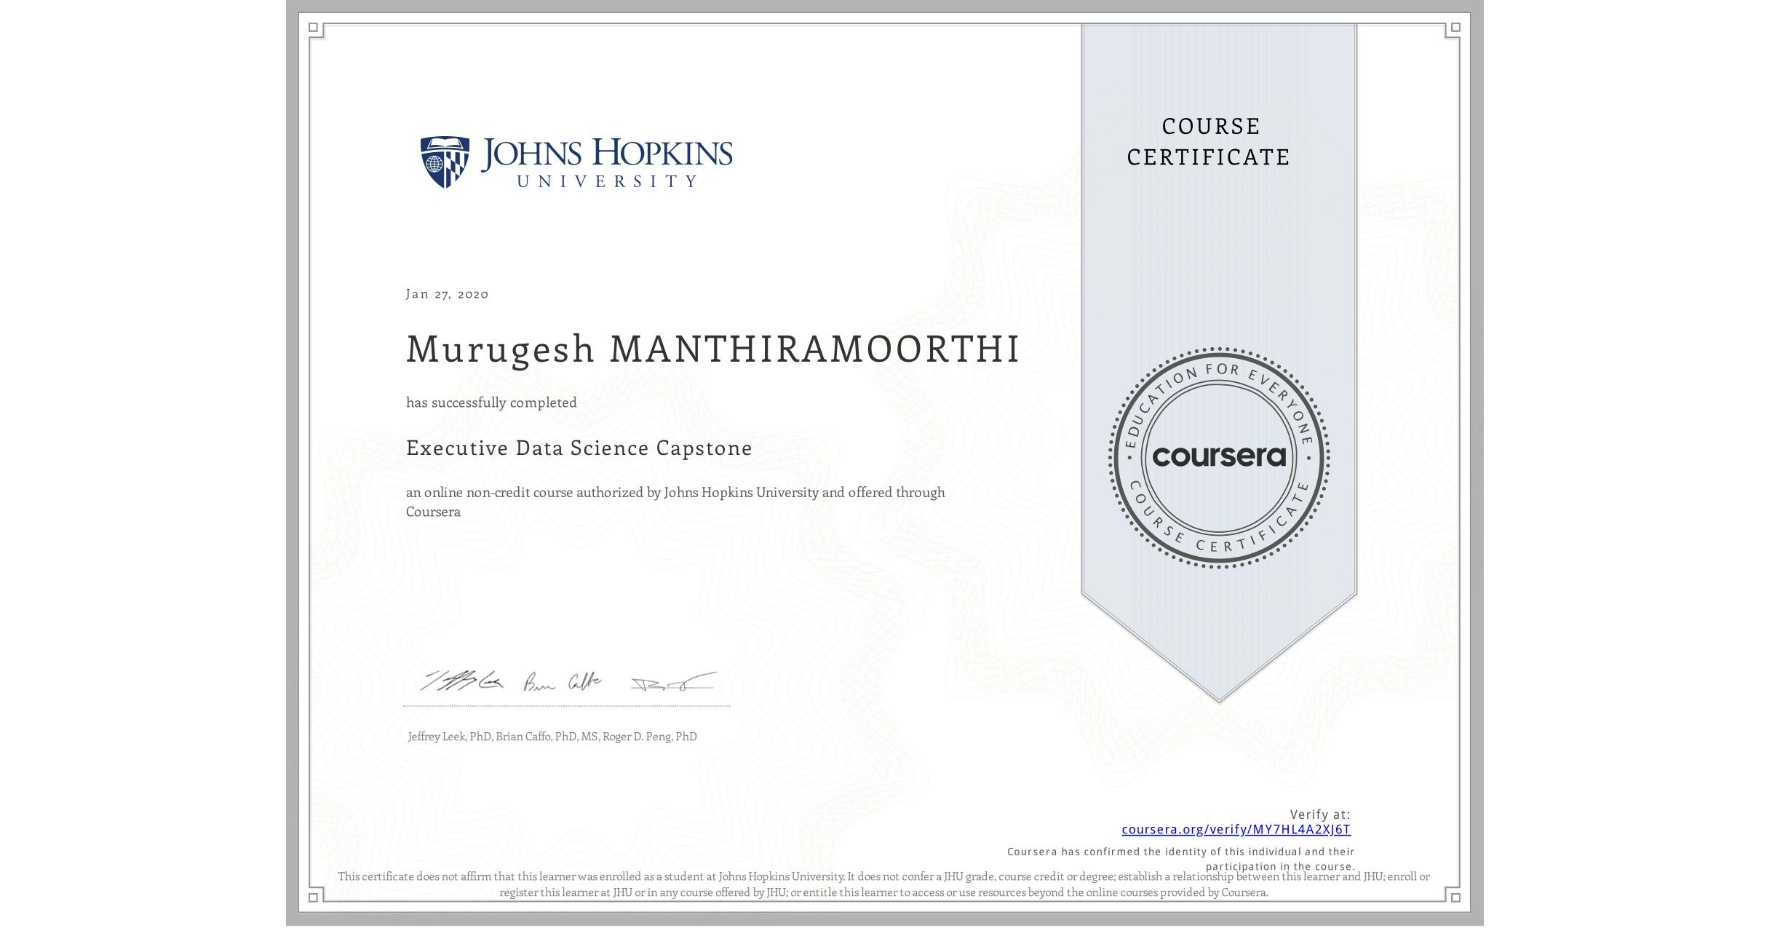 View certificate for Murugesh Manthiramoorthi, Executive Data Science Capstone, an online non-credit course authorized by Johns Hopkins University and offered through Coursera